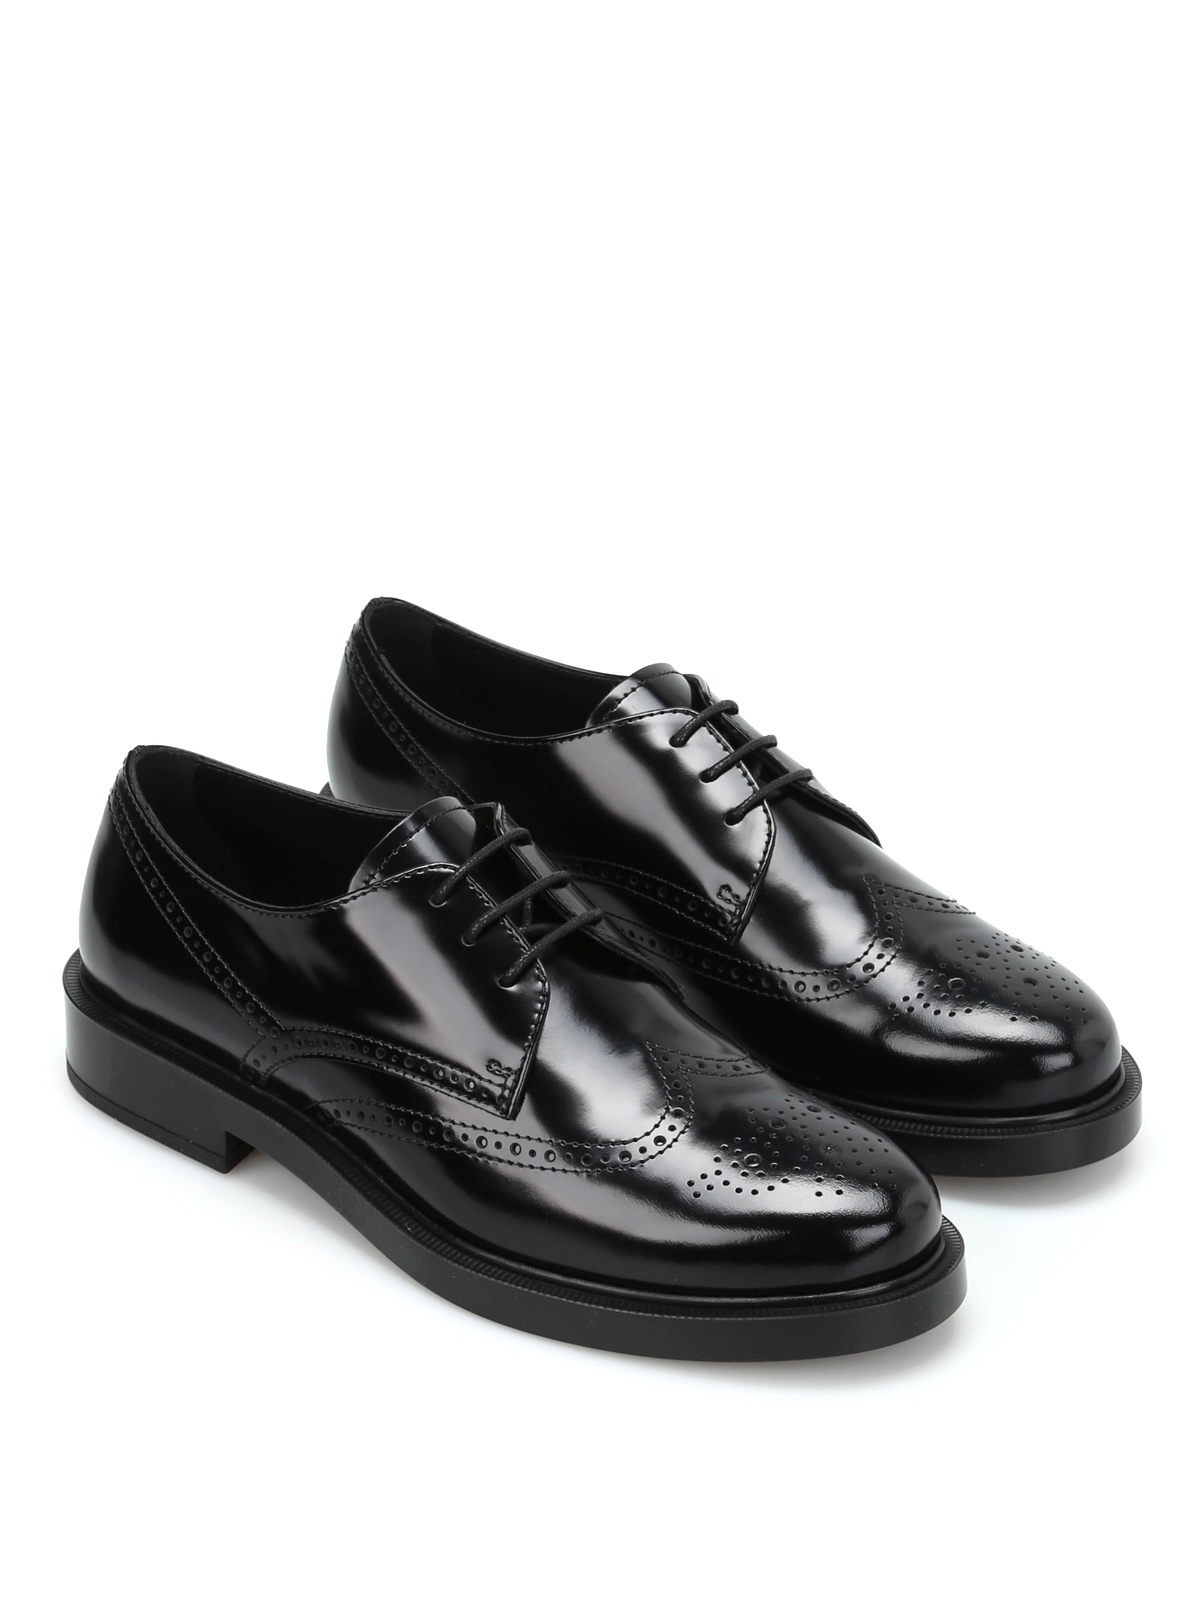 Tods Chaussures Derby Classique O1Tf4btGNE